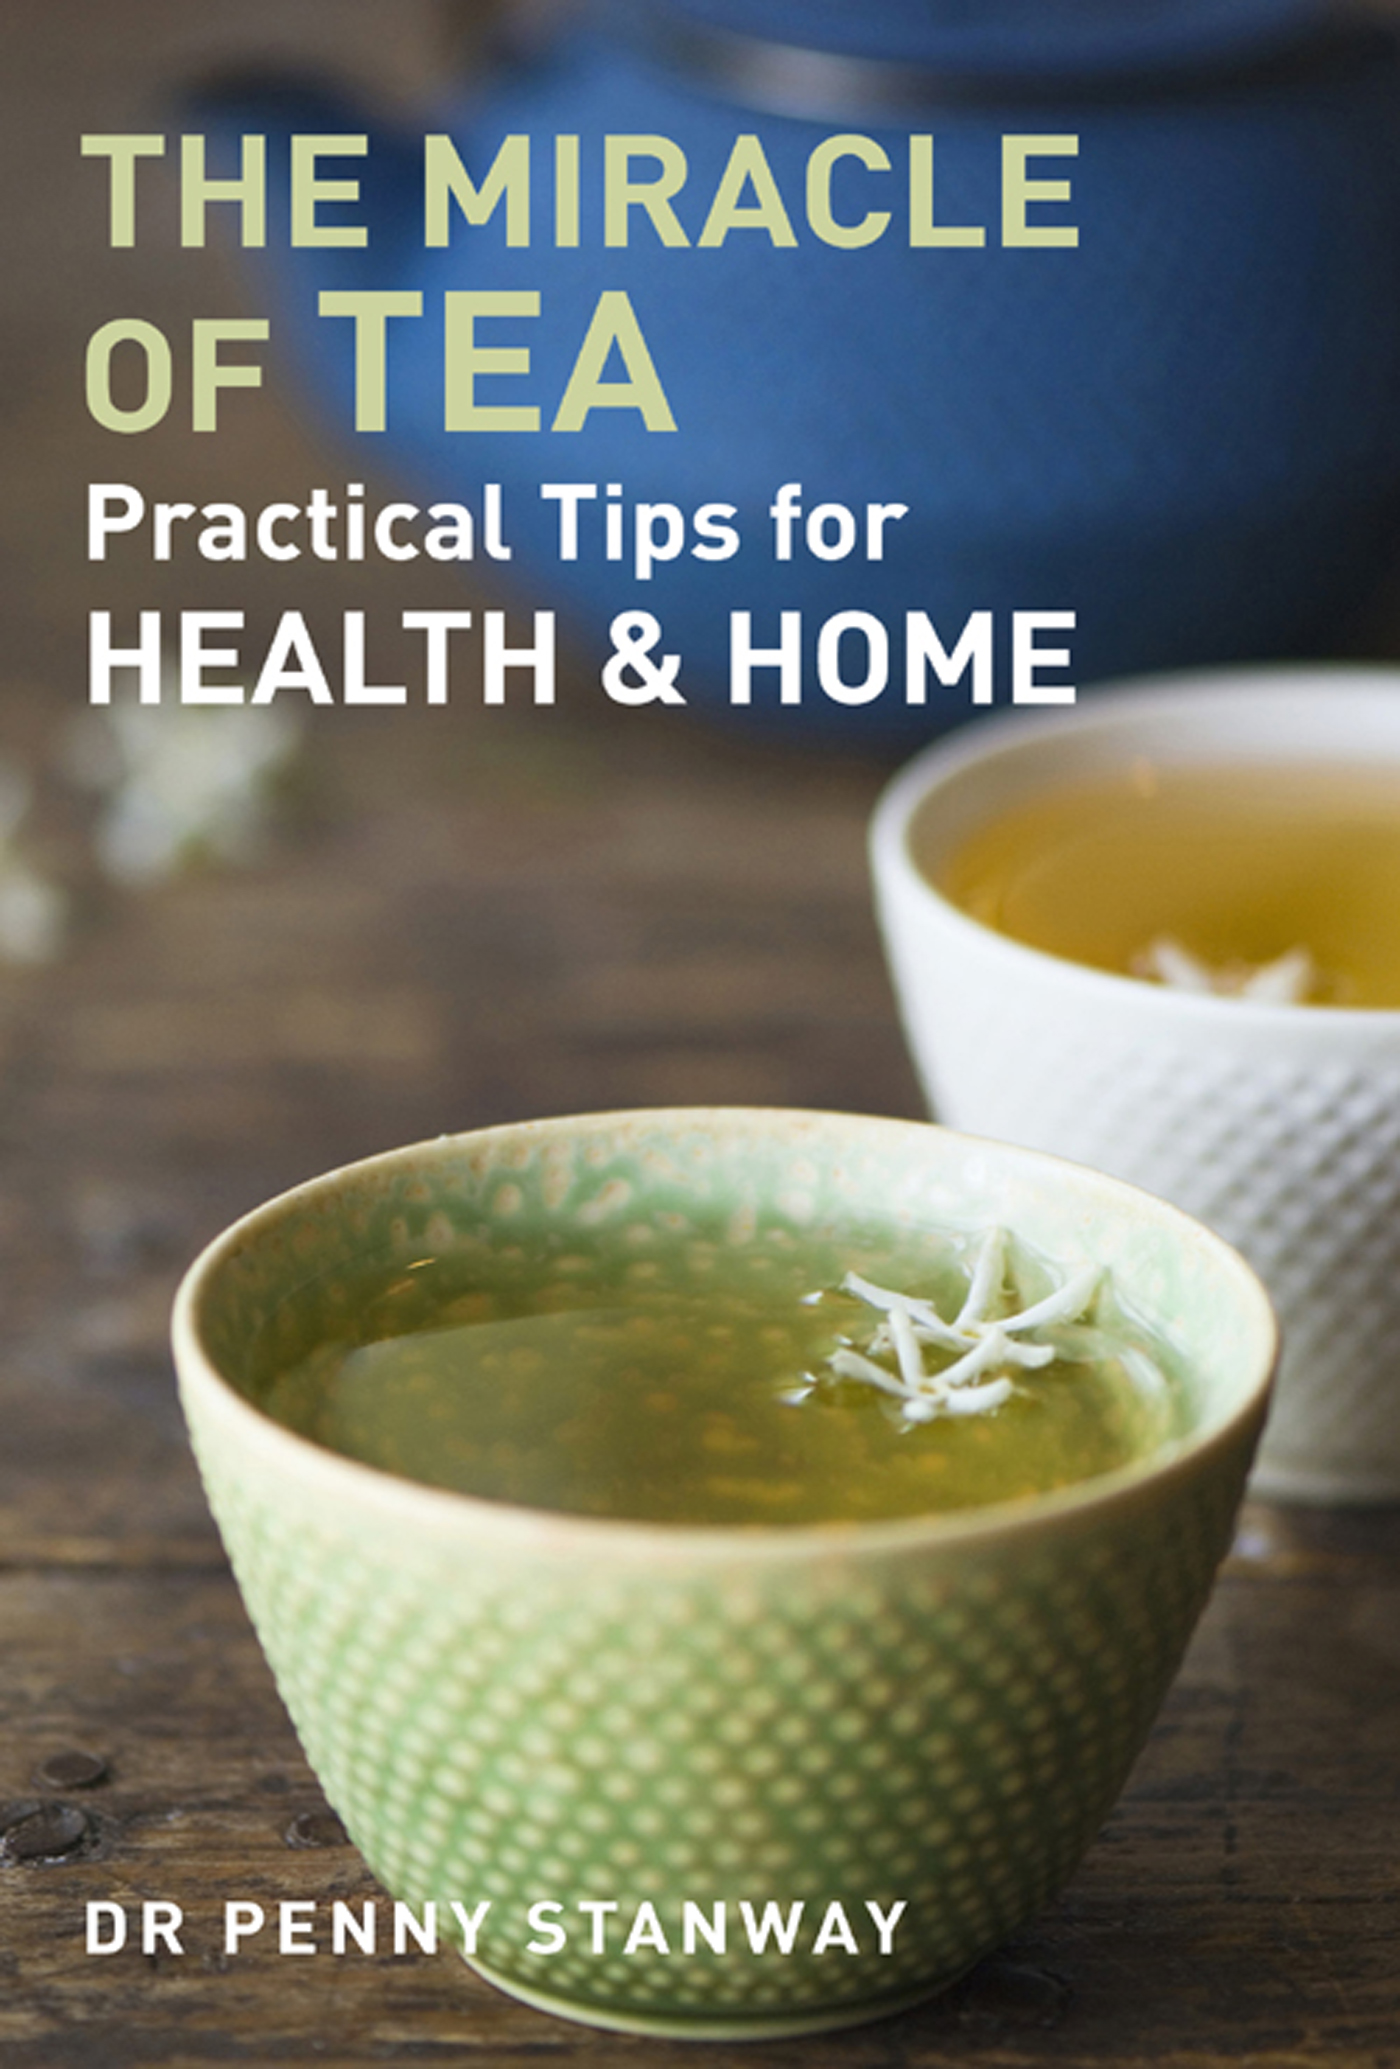 The Miracle of Tea: Practical Tips for Health,  Home and Beauty